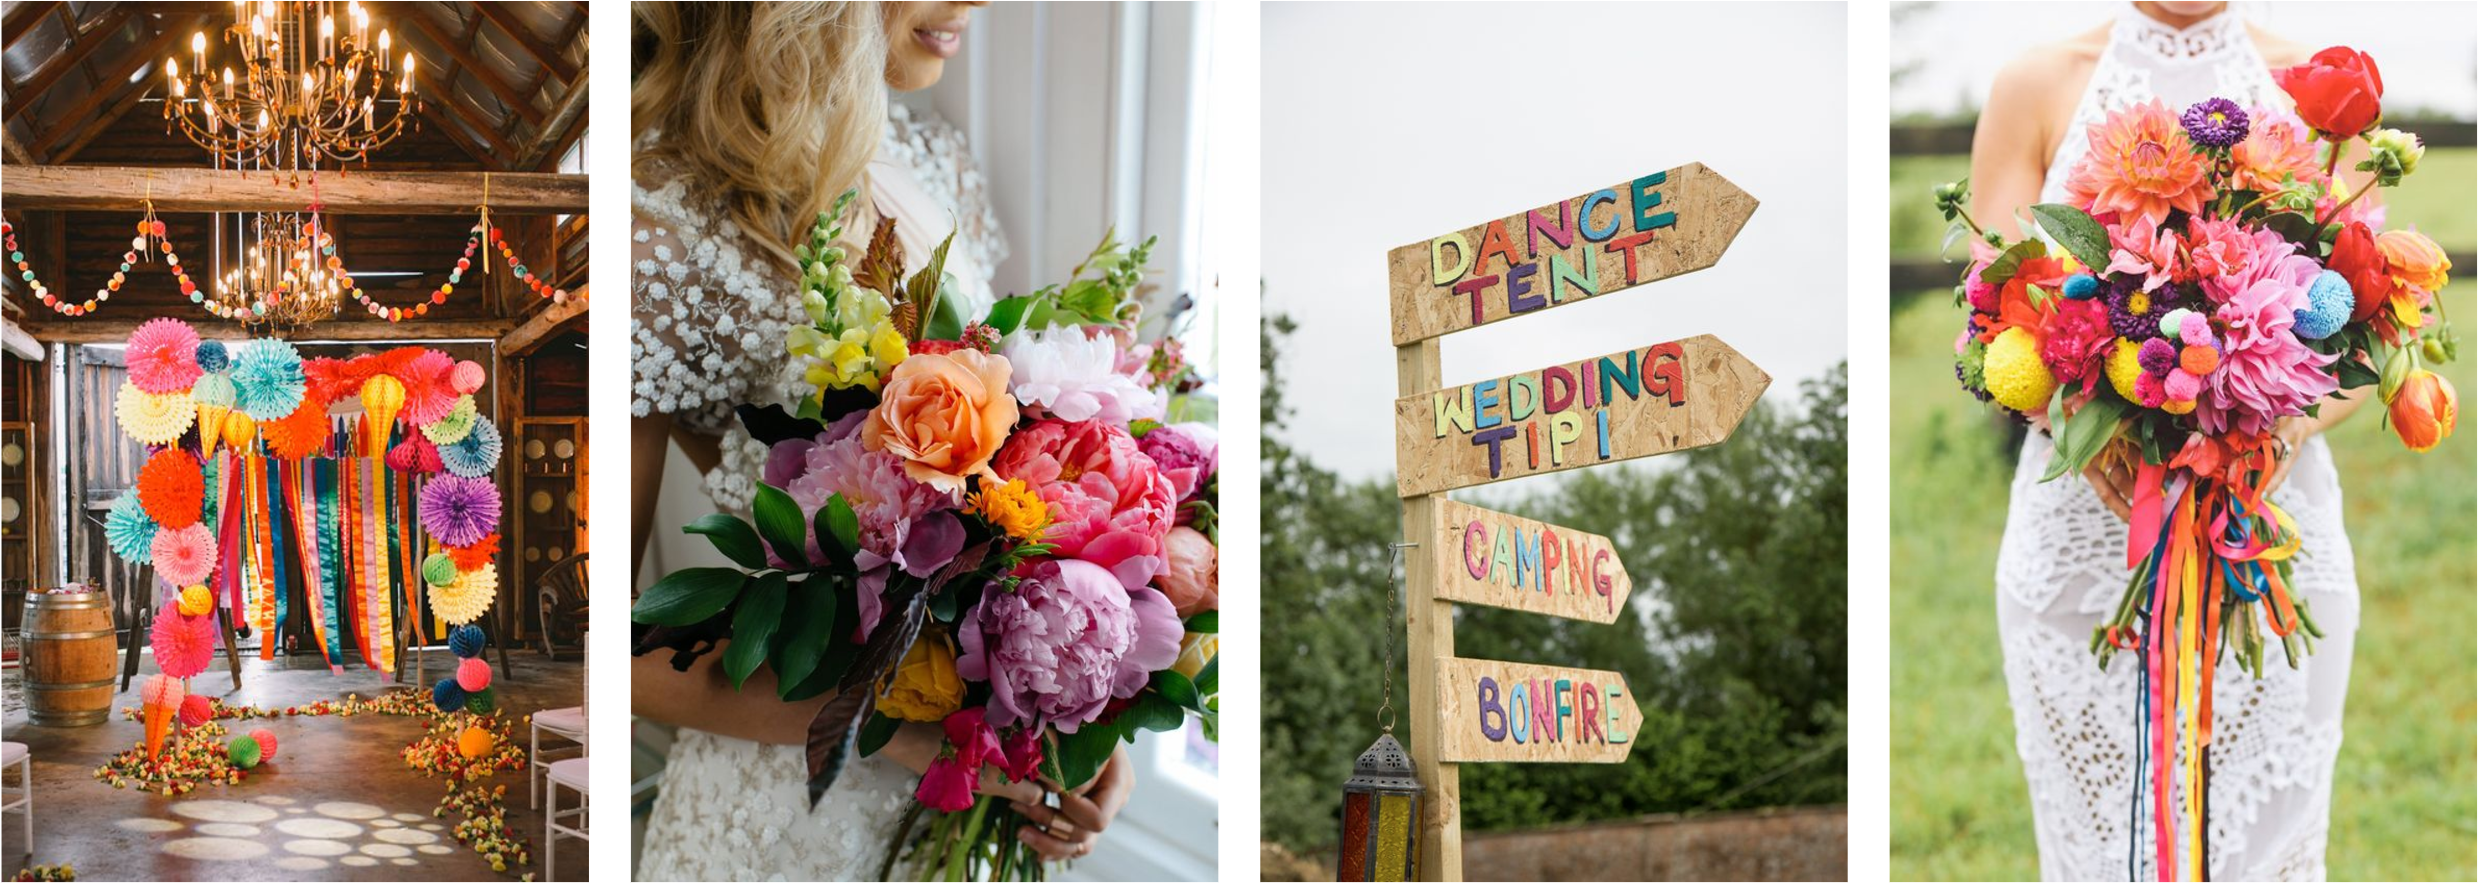 Bright coloured wedding styling